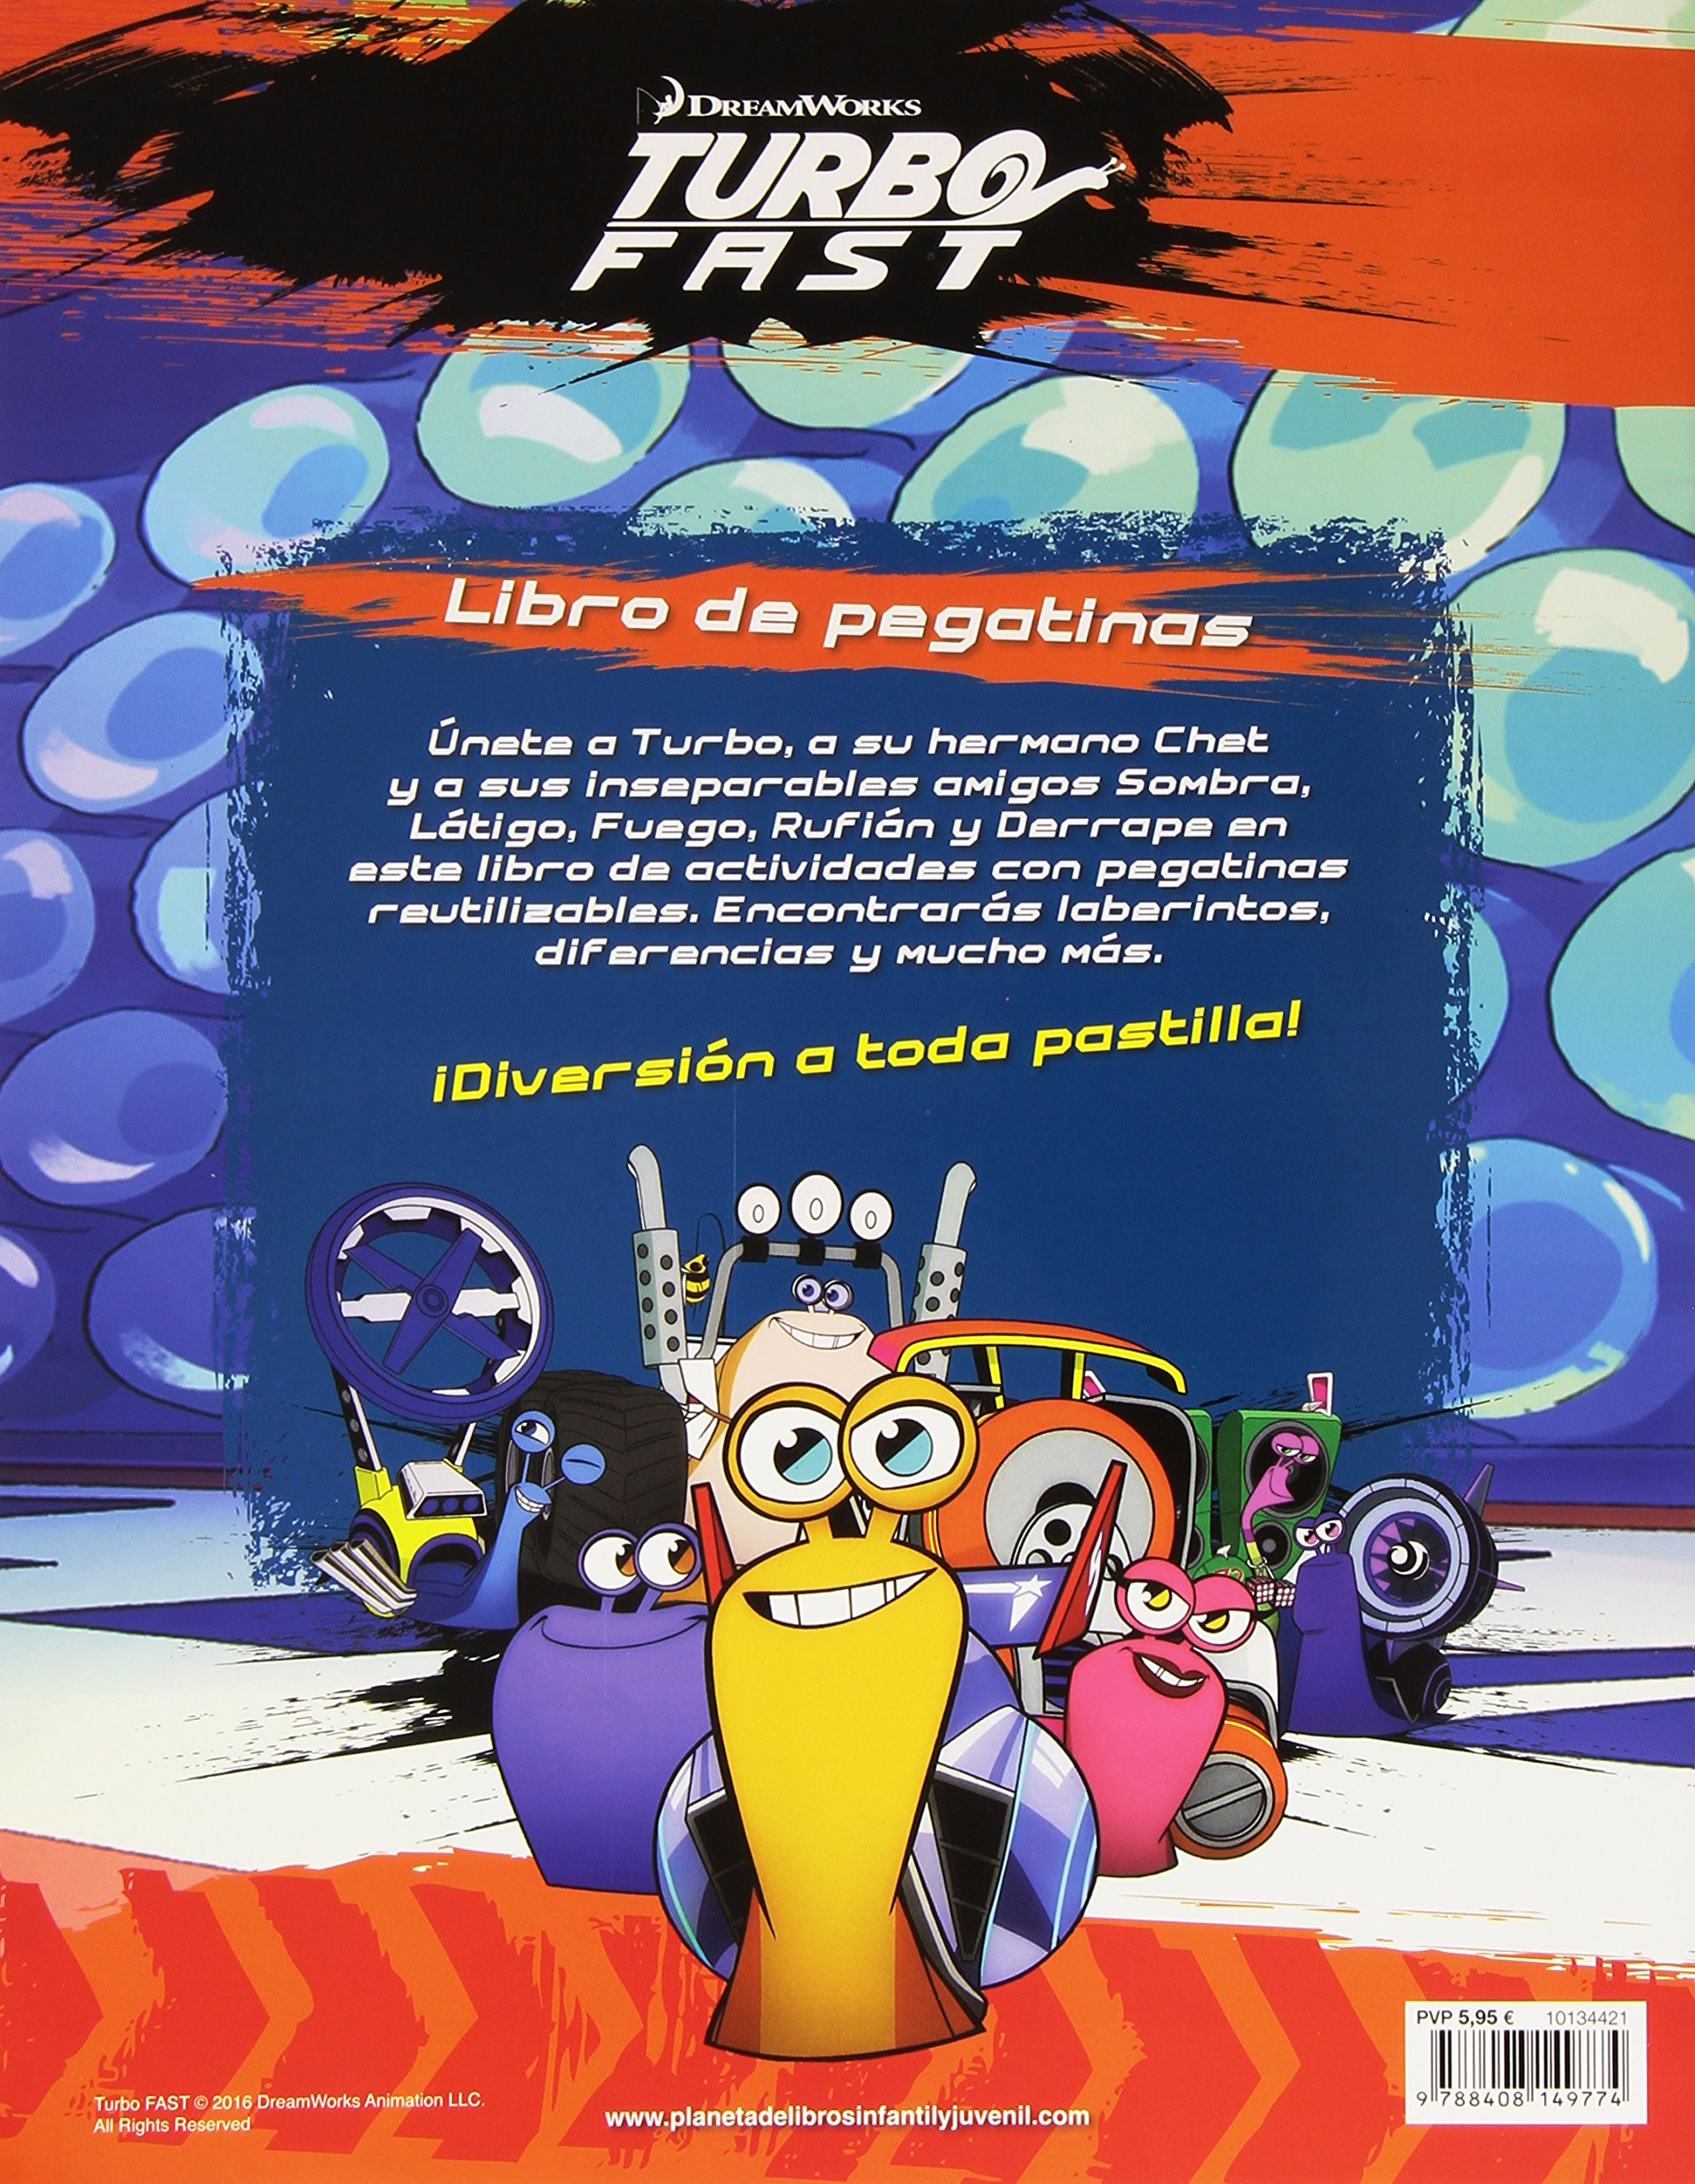 Turbo Fast. Libro de pegatinas: Dreamworks: 9788408149774: Amazon.com: Books